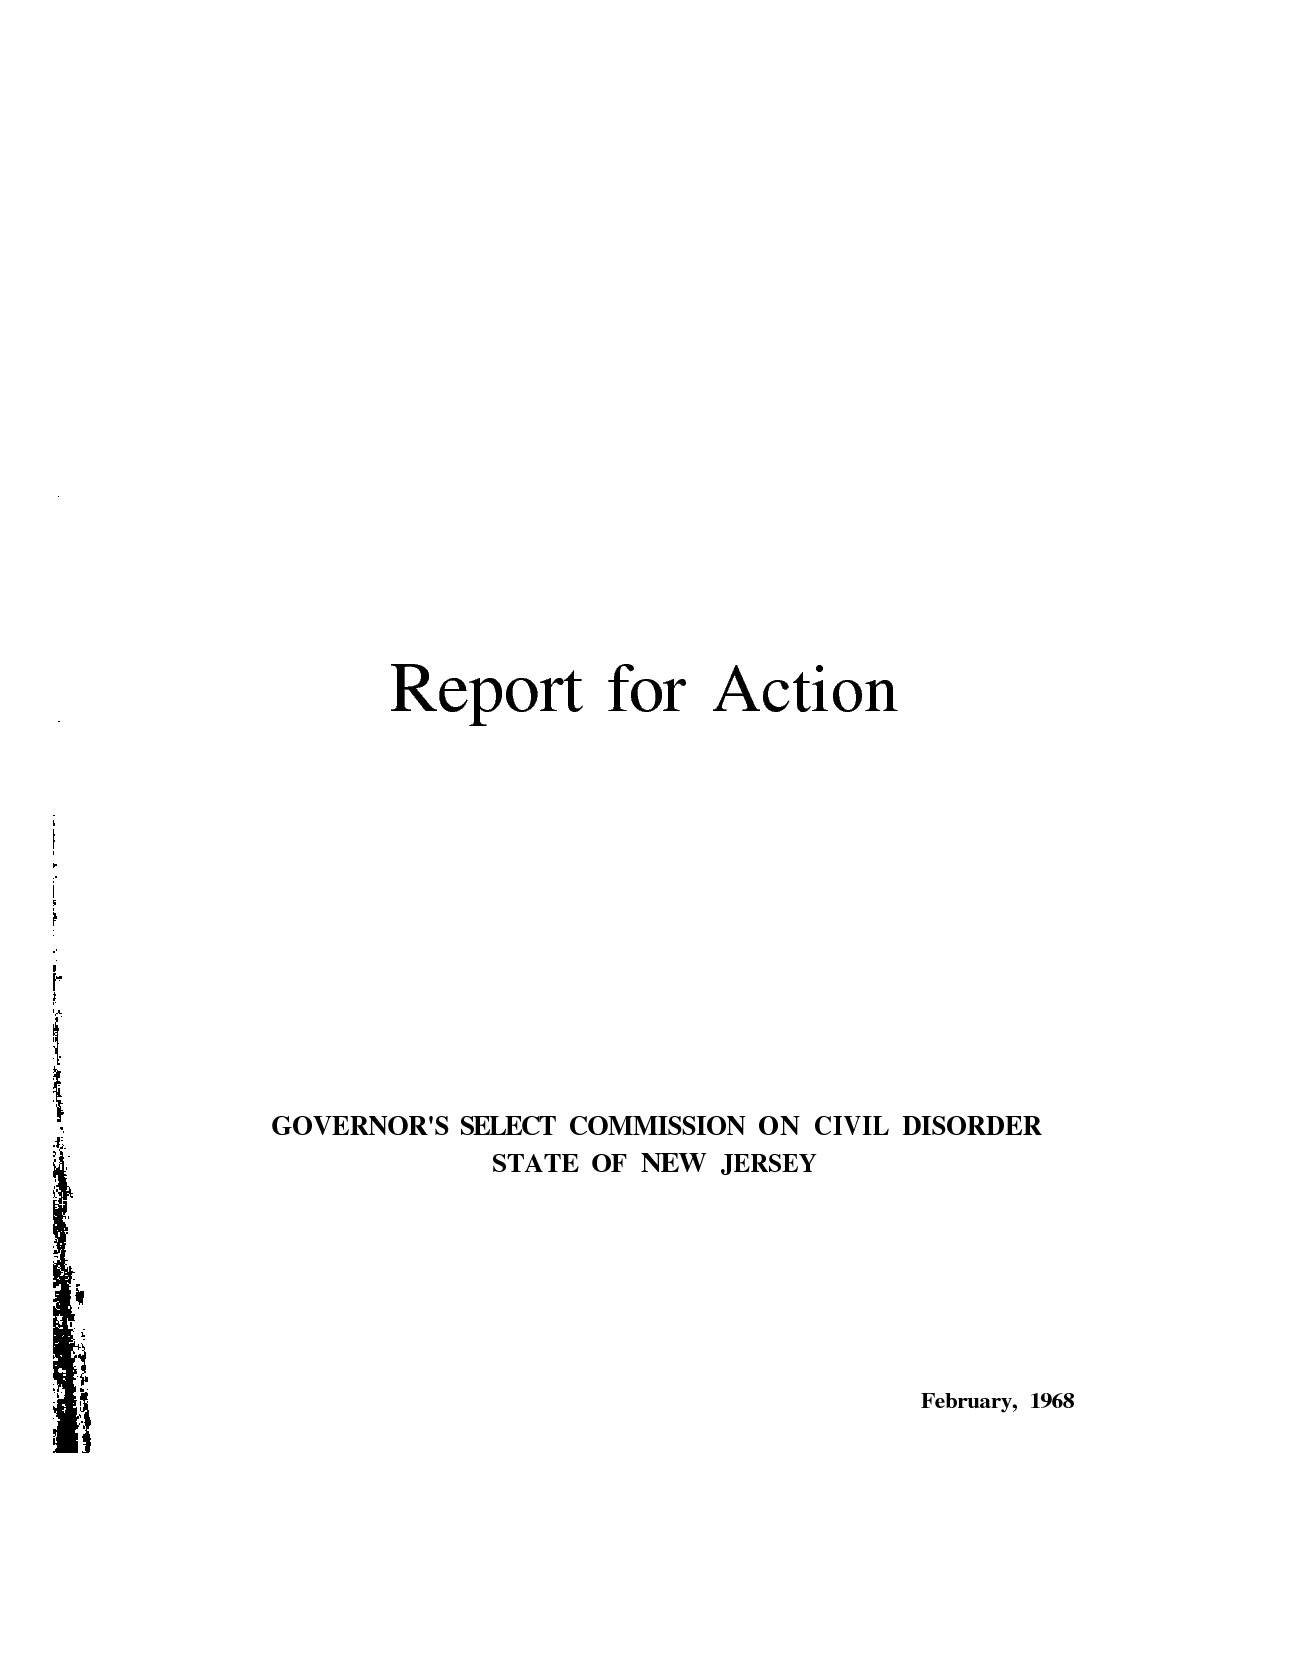 Report for Action (1968)